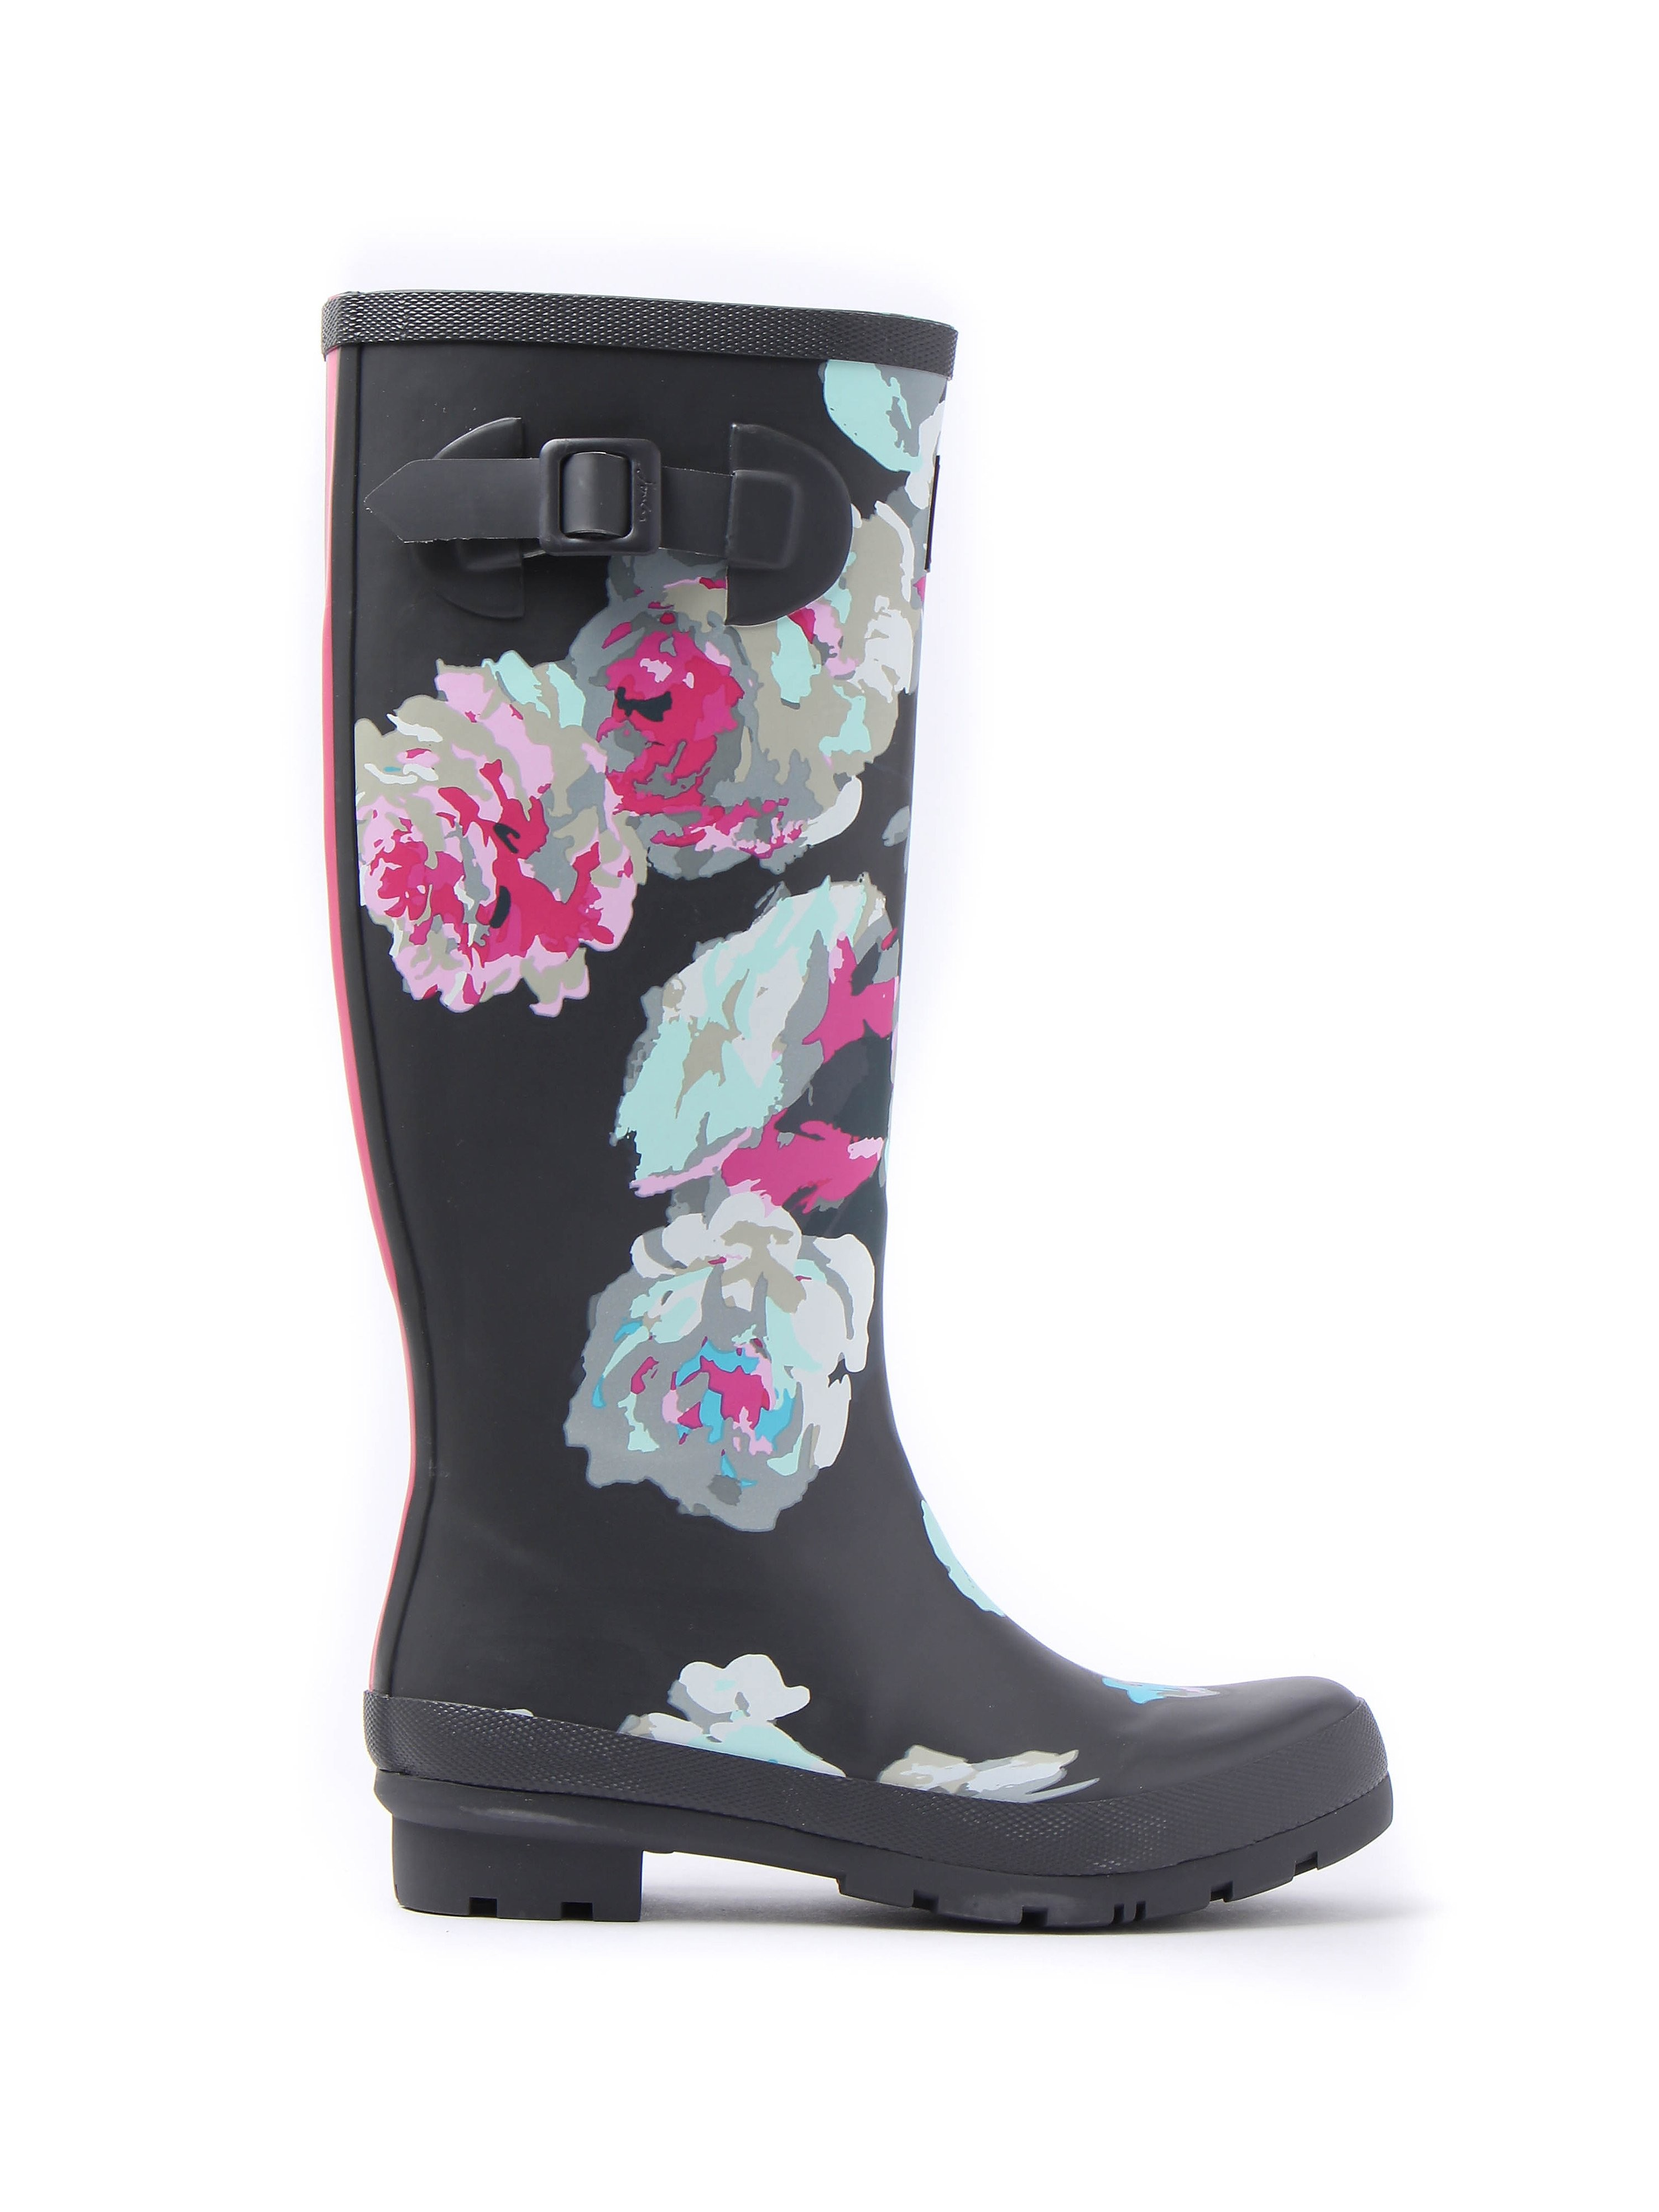 Joules Women's Floral Wellyprint Full Height Rubber Wellington Boots - Grey & Beau Bloom